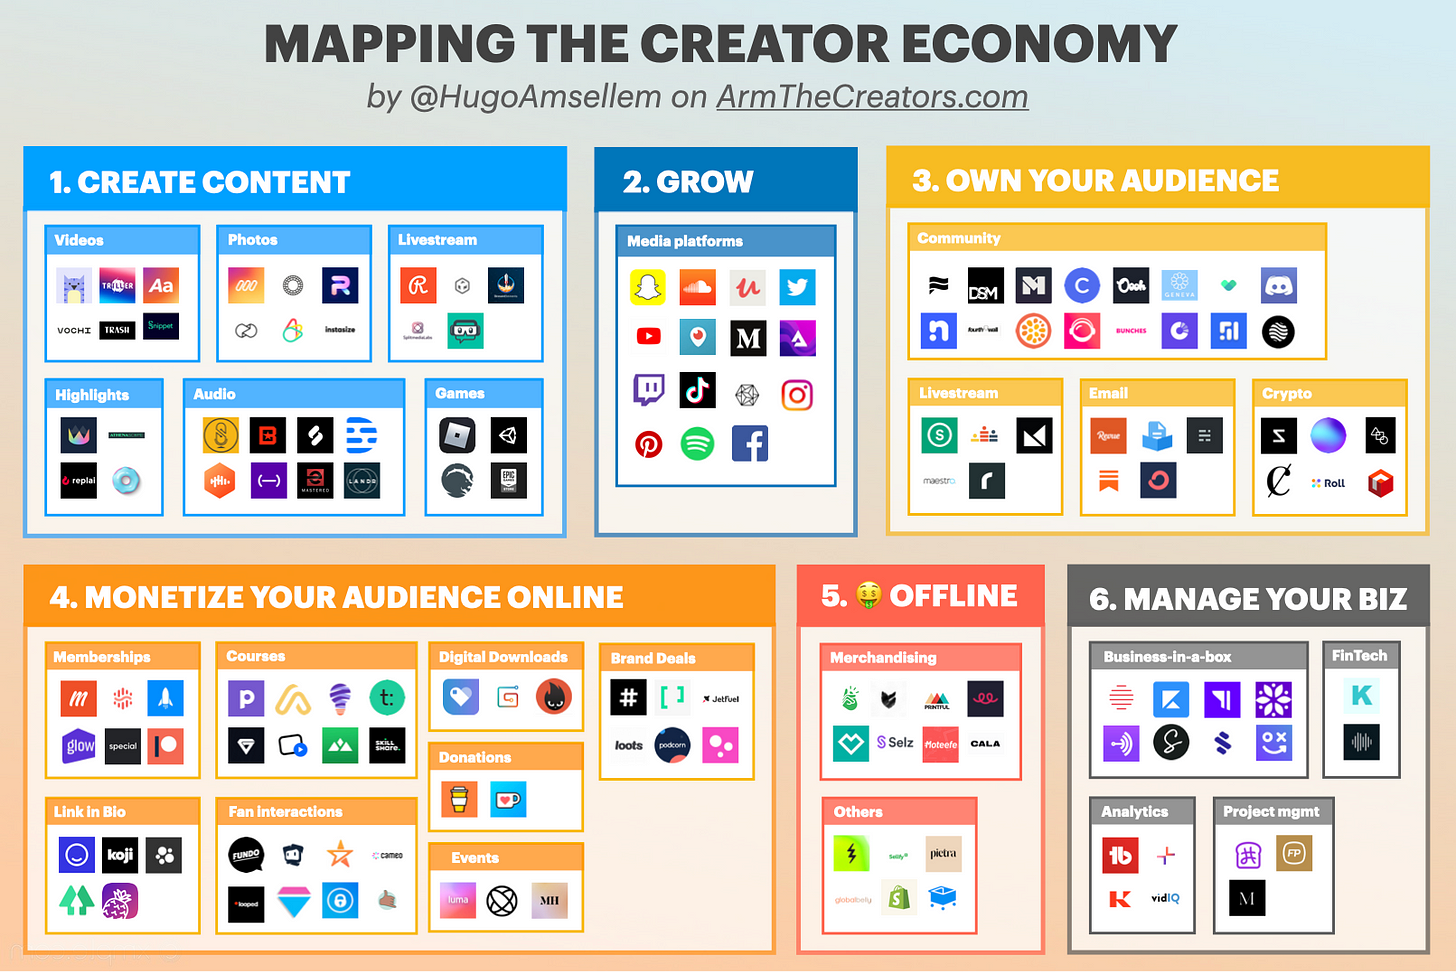 Mapping the Creator Economy